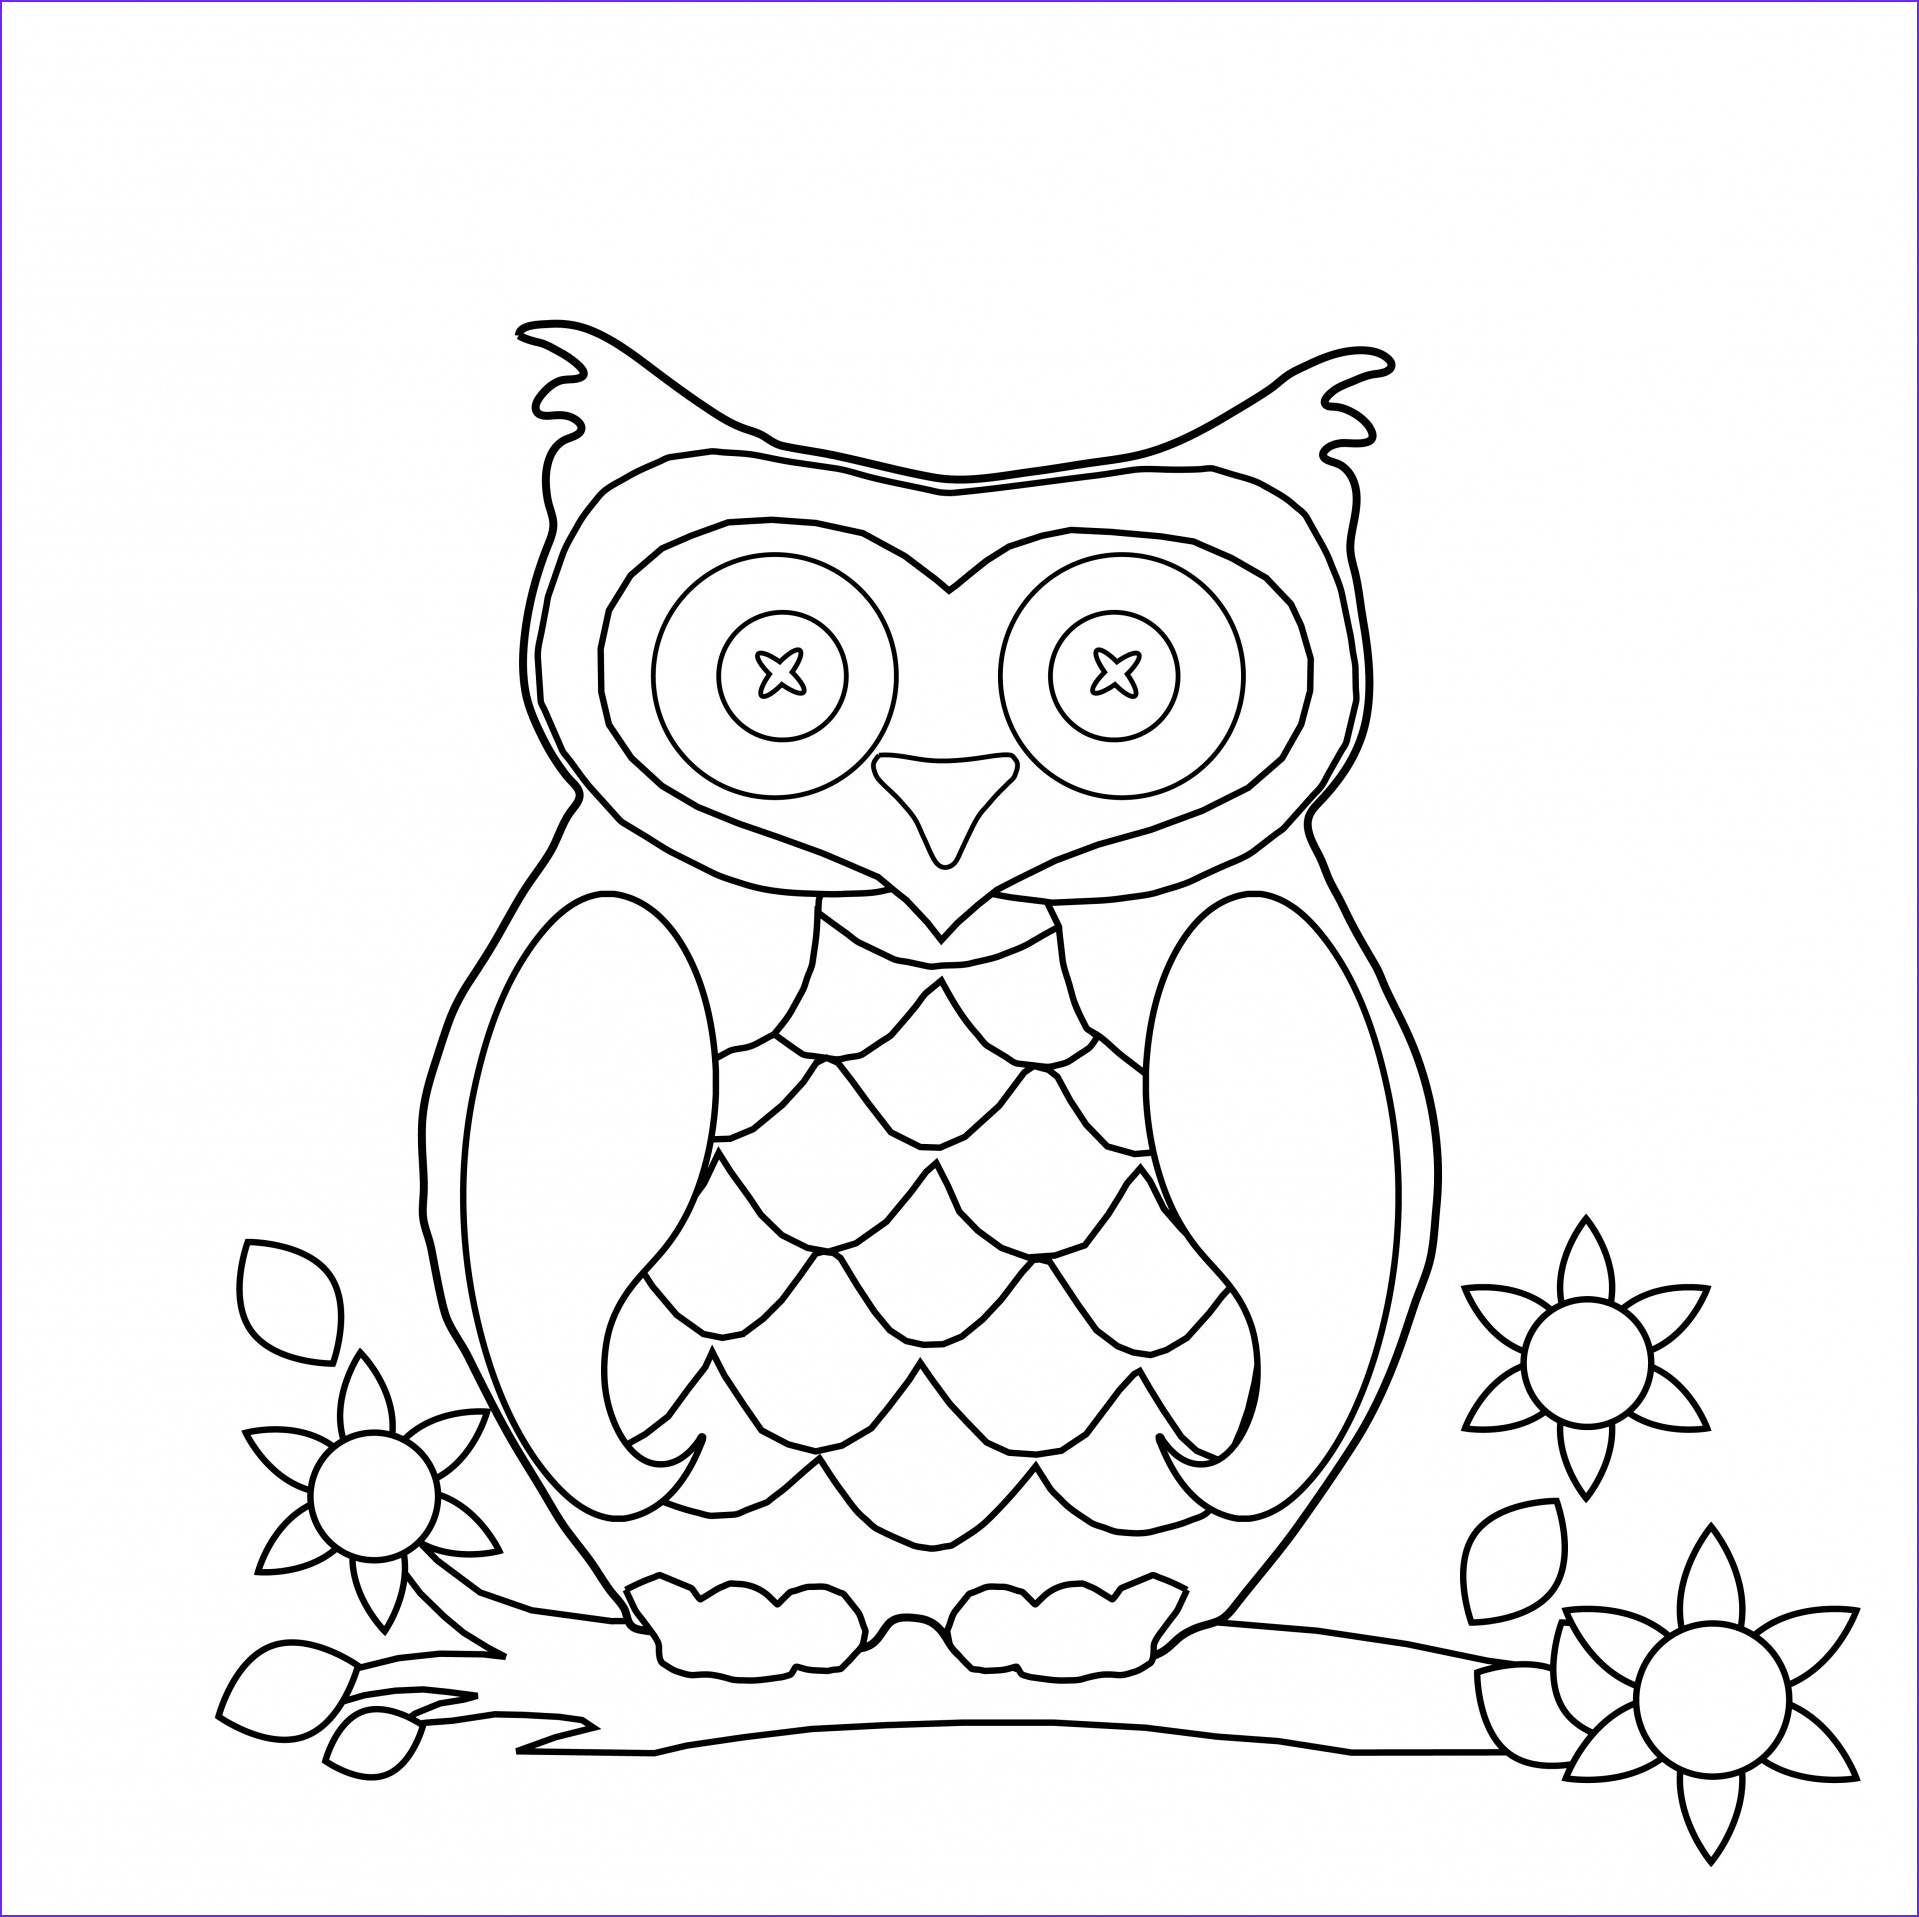 Free Coloring Pictures.com Inspirational Photography Free Printable Abstract Coloring Pages for Adults